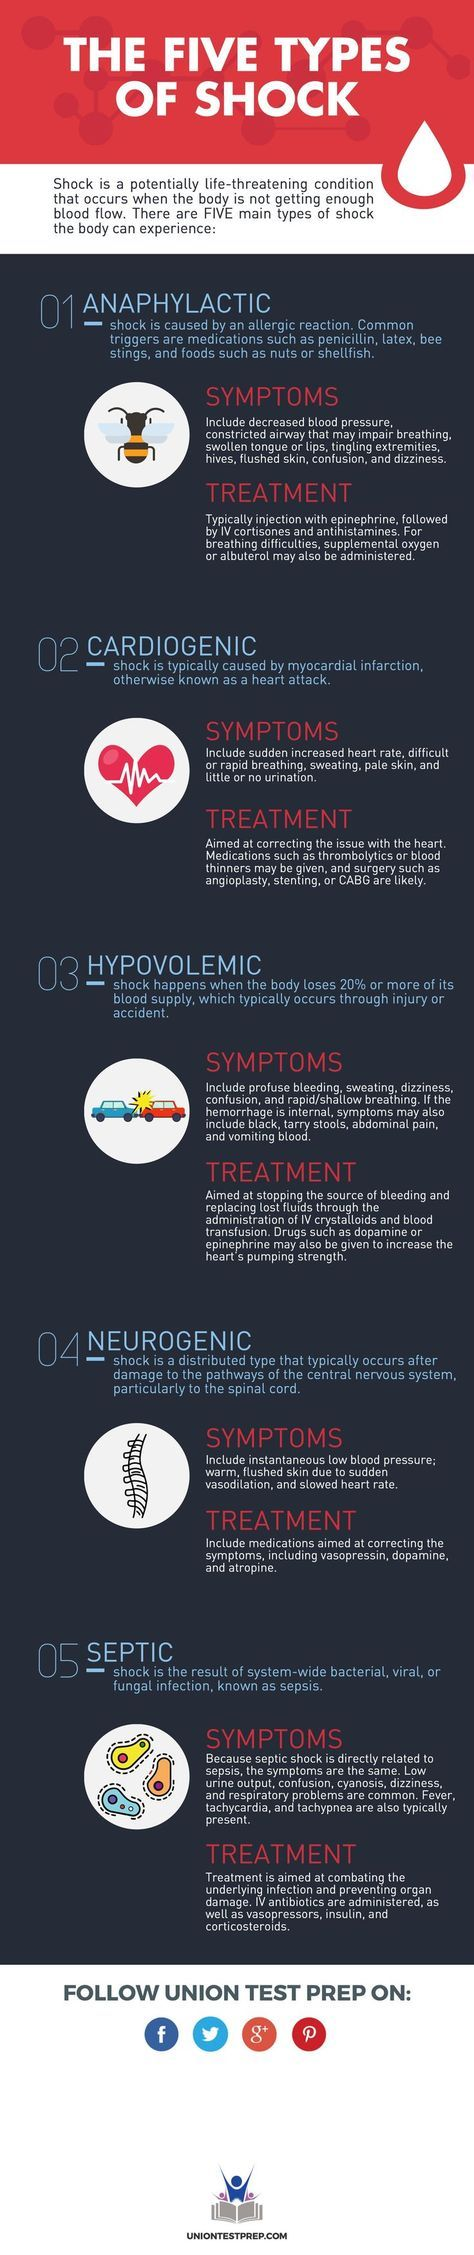 There are 5 types of shock- can you name them? This is must-know information for nurses and other healthcare professionals!